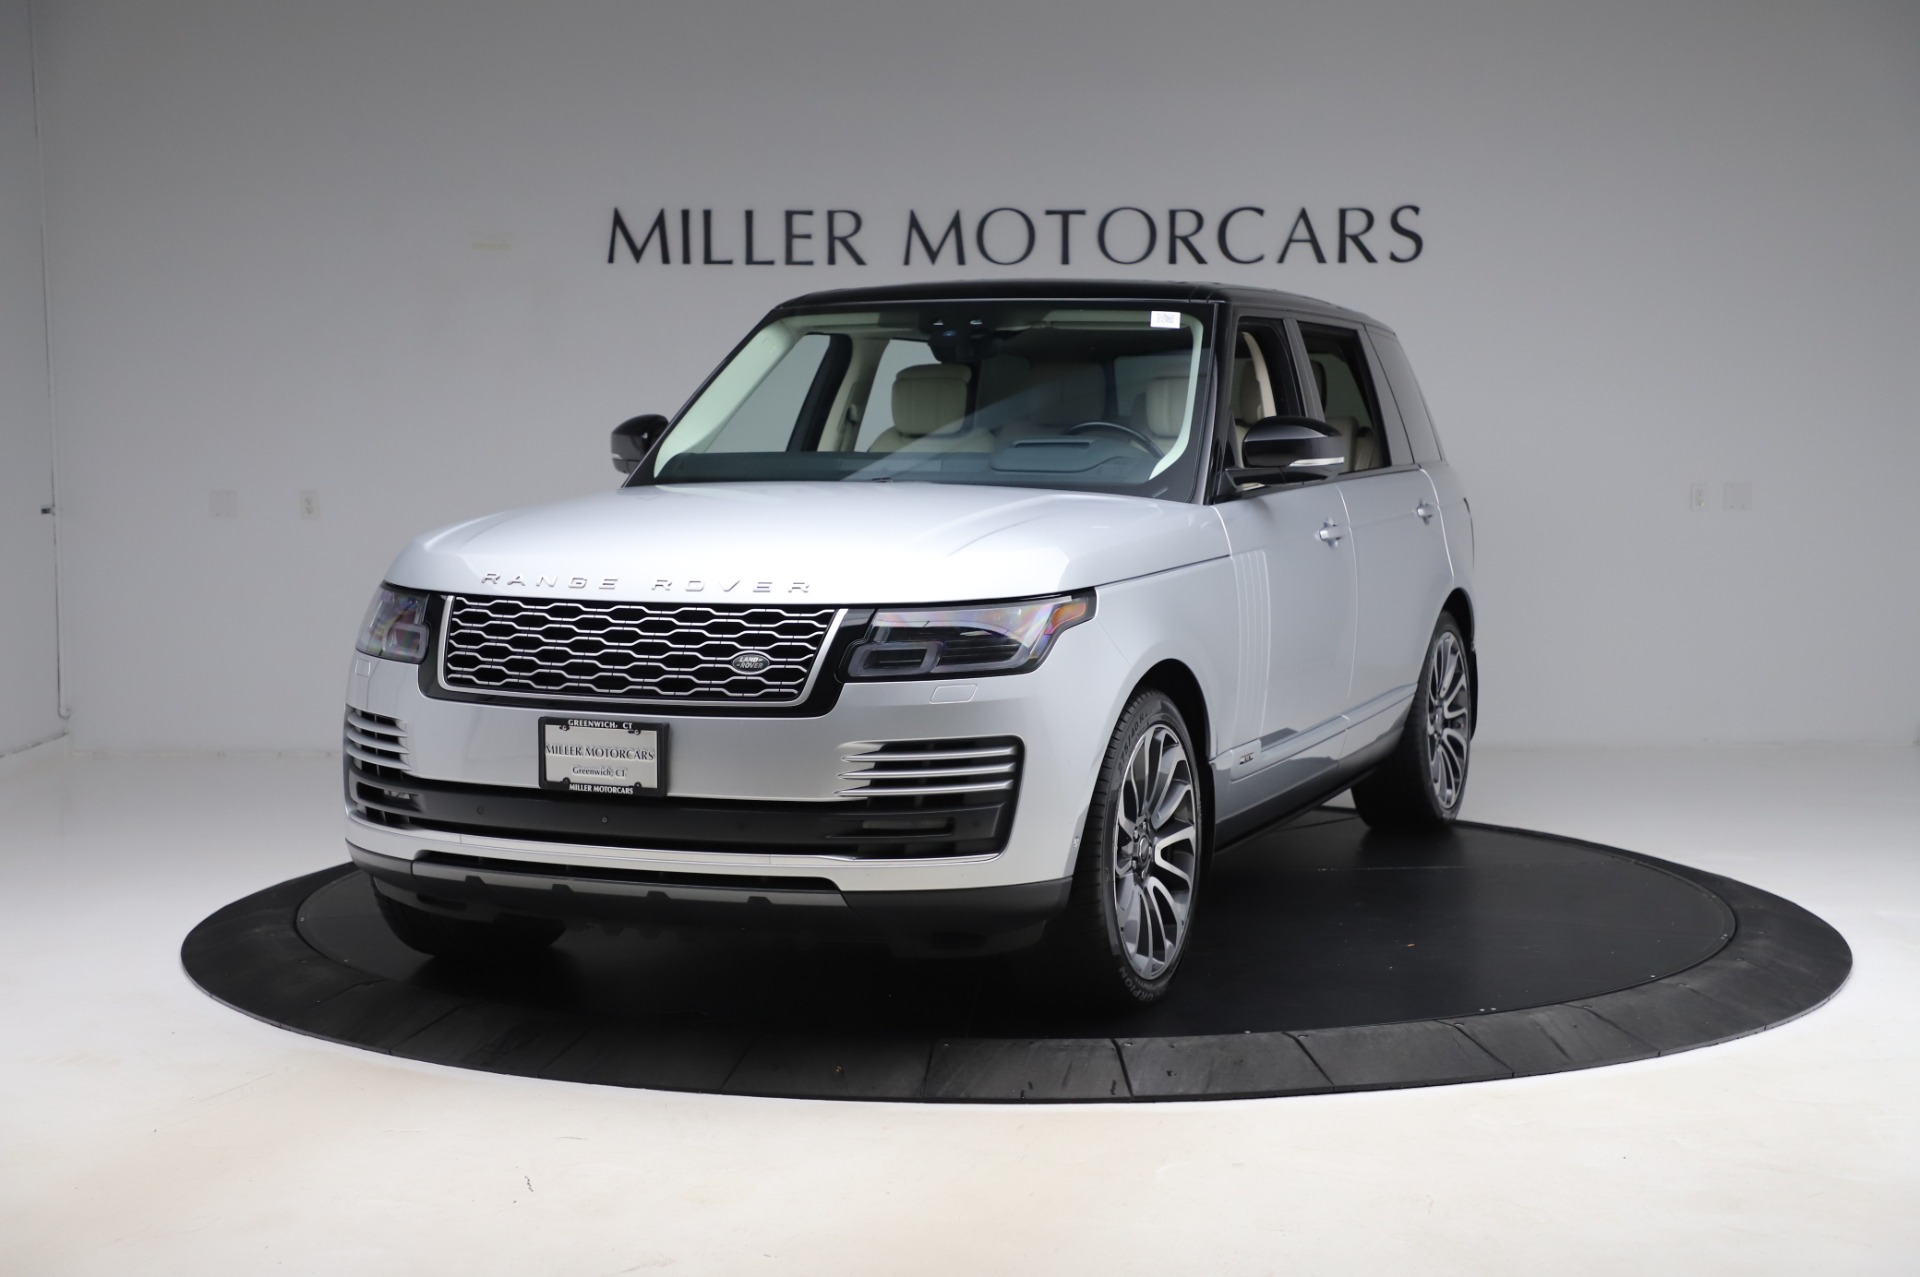 Used 2019 Land Rover Range Rover Supercharged LWB for sale Sold at Bugatti of Greenwich in Greenwich CT 06830 1